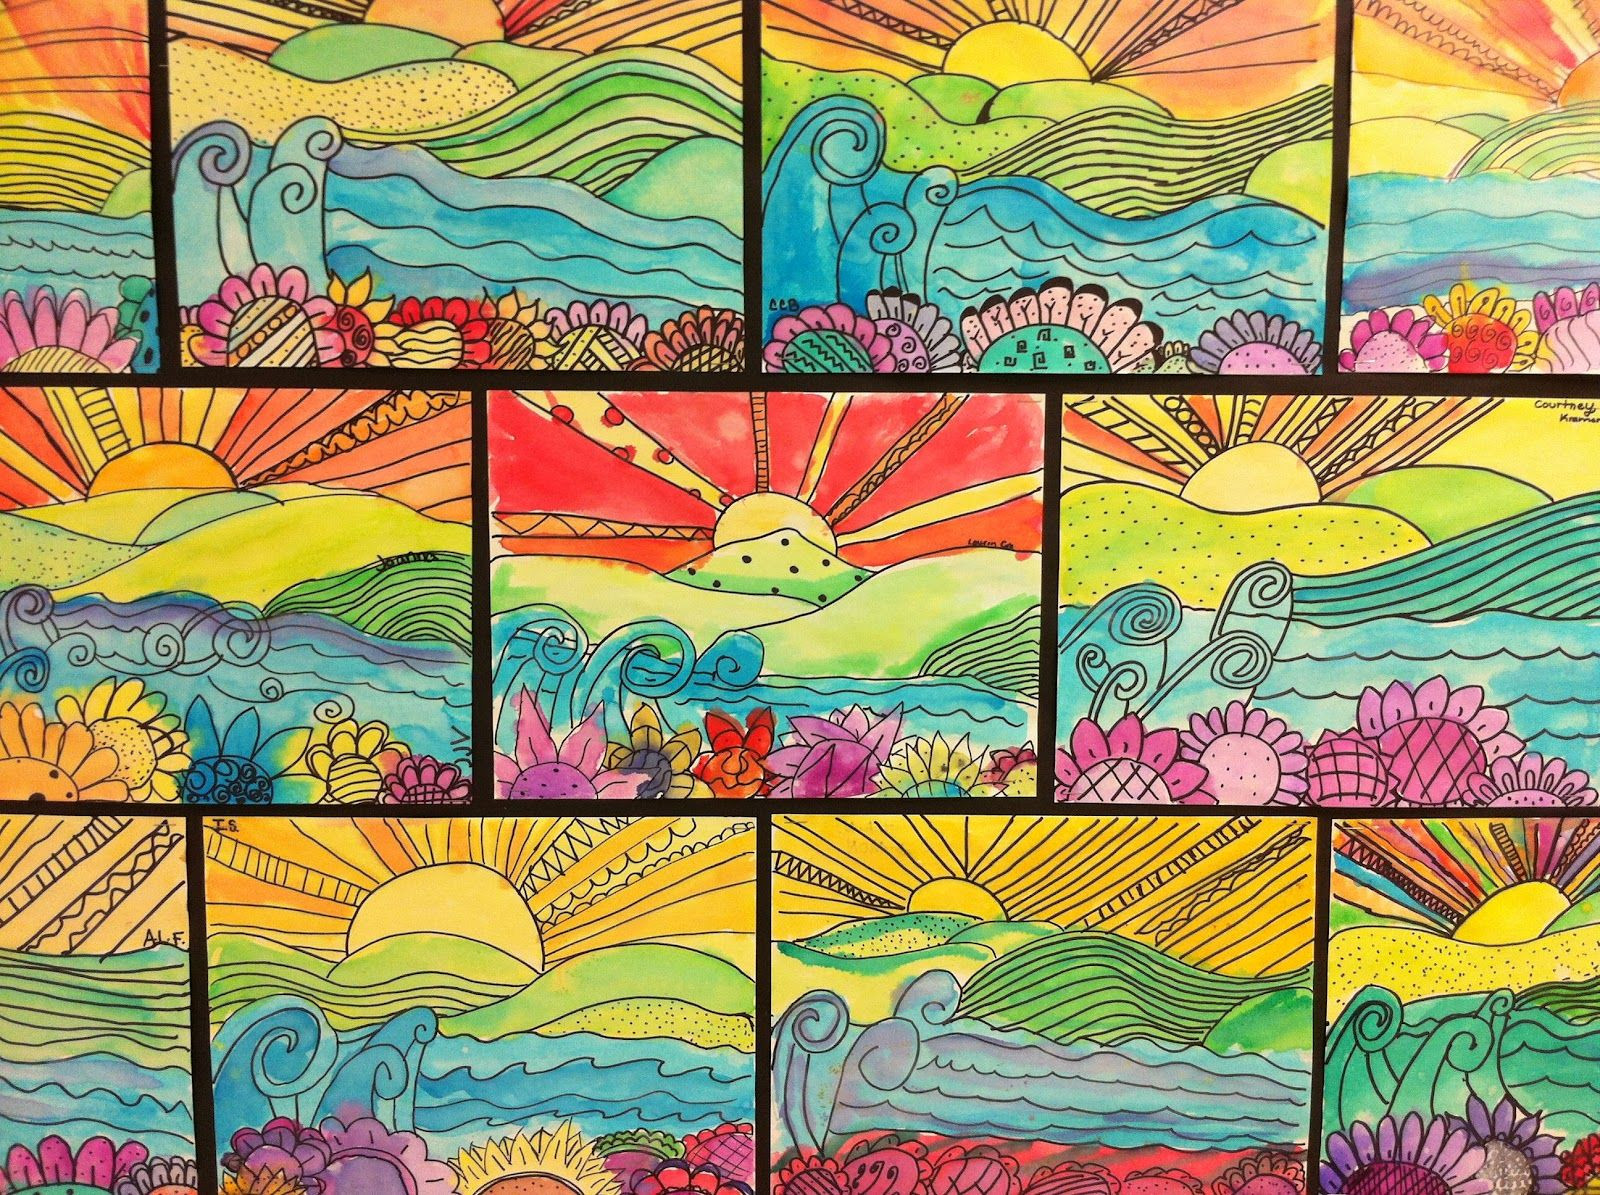 Best ideas about Elementry Art Projects . Save or Pin Apex Elementary Art whimsical landscapes Now.